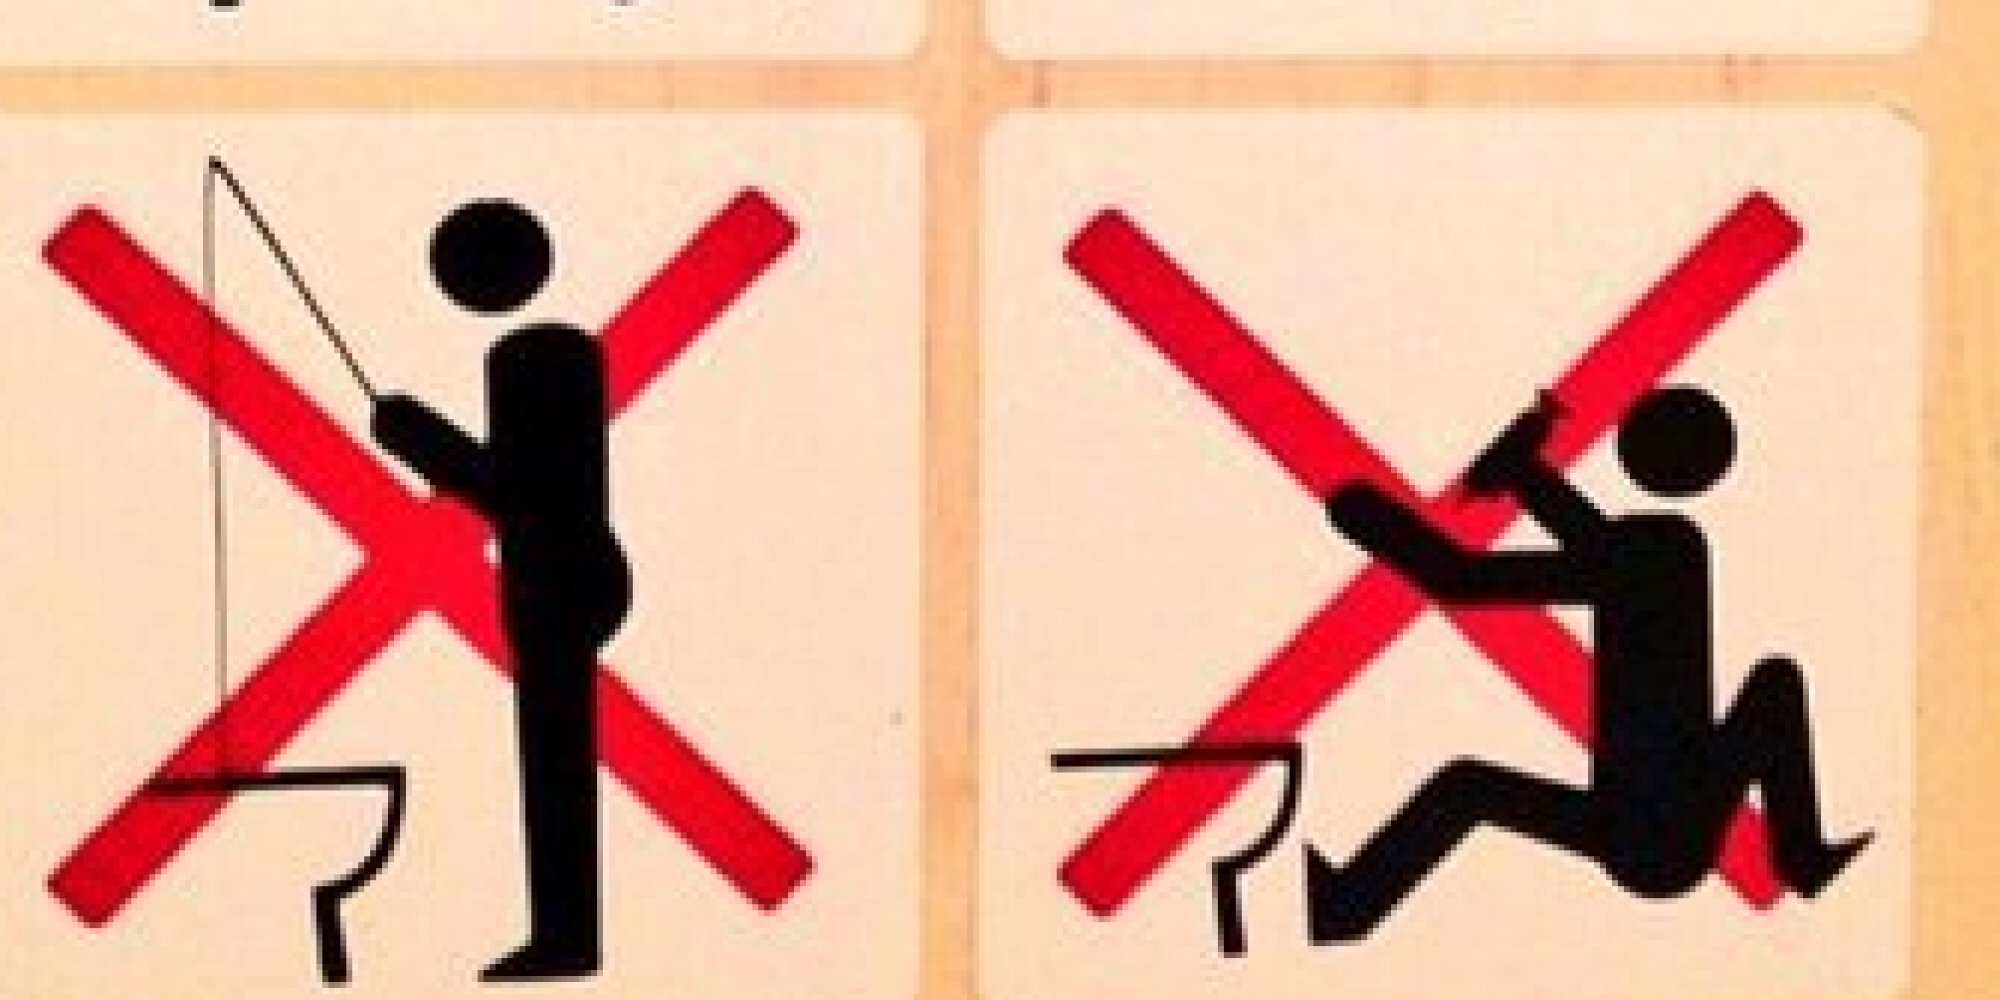 Bathroom Signs South Africa sochi bathroom signs forbid fishing, upper deckers in olympic